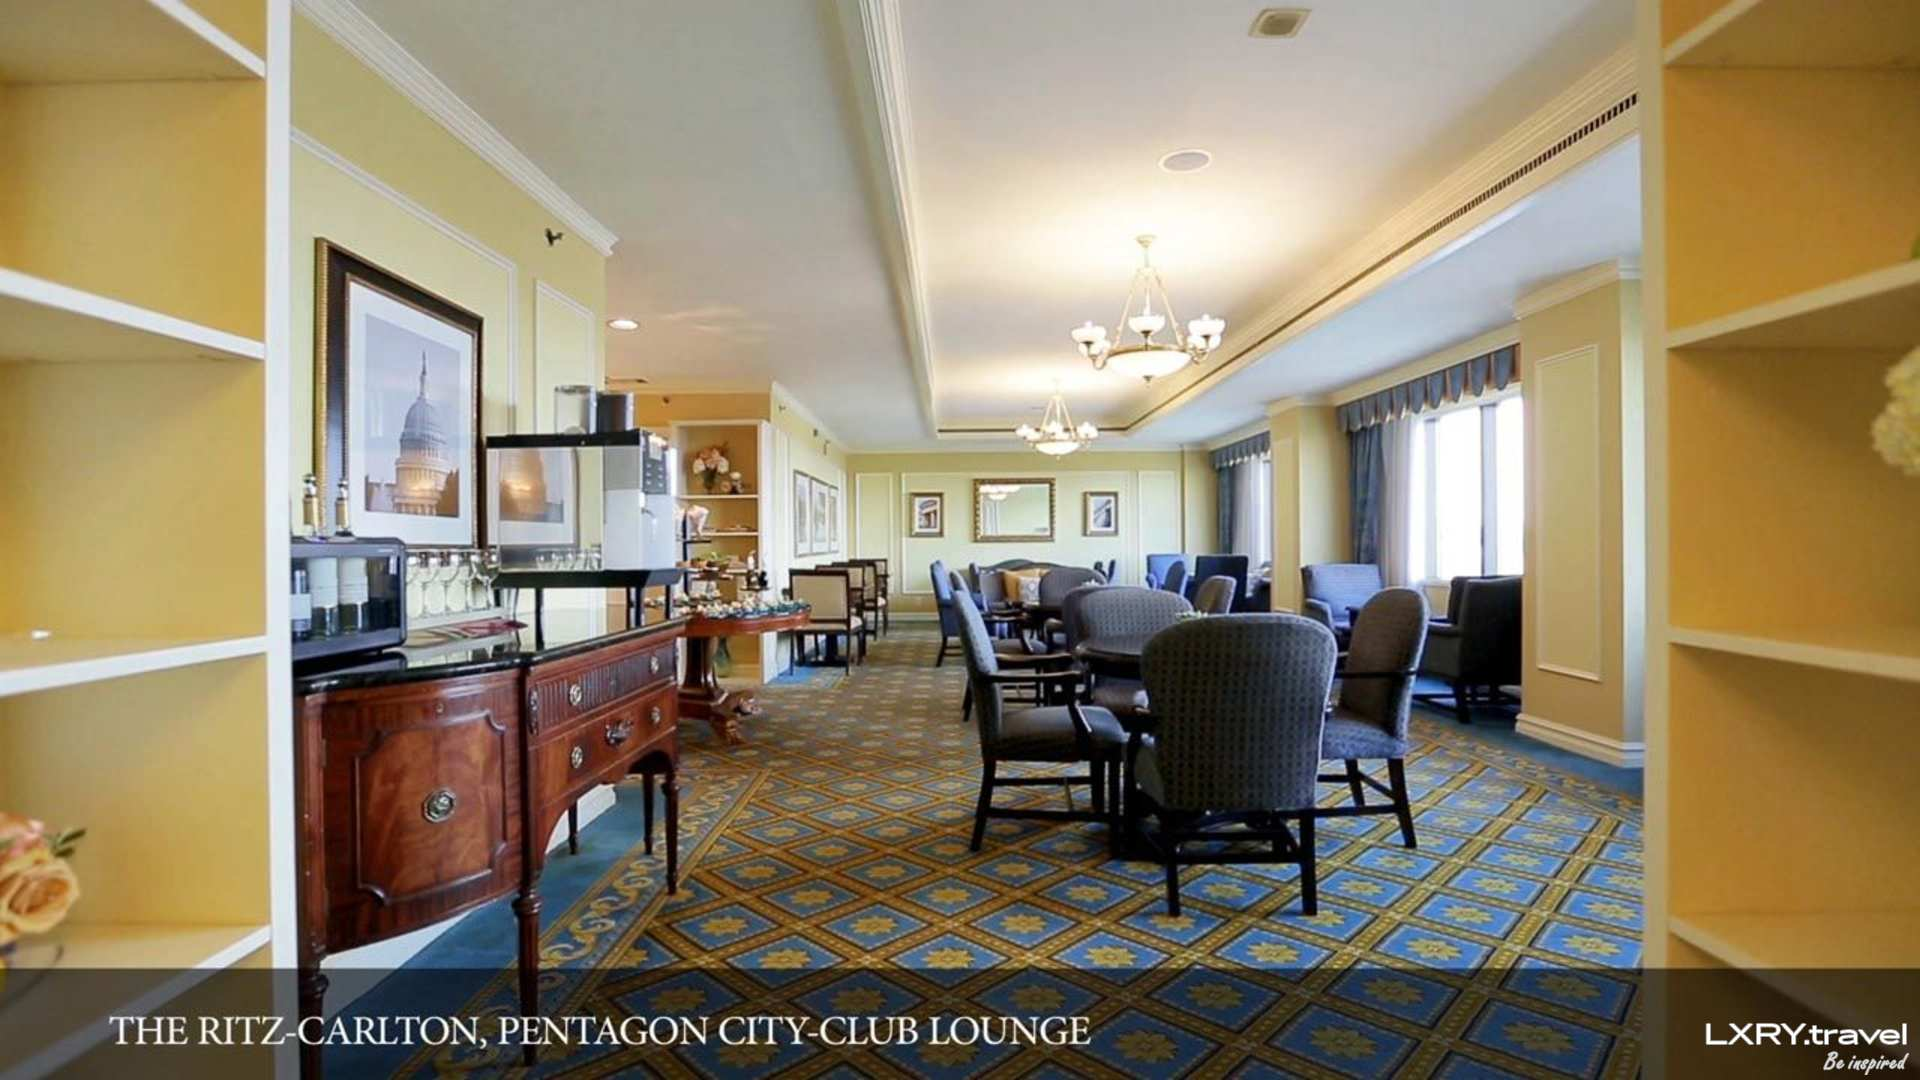 The Ritz Carlton, Pentagon City 29/35